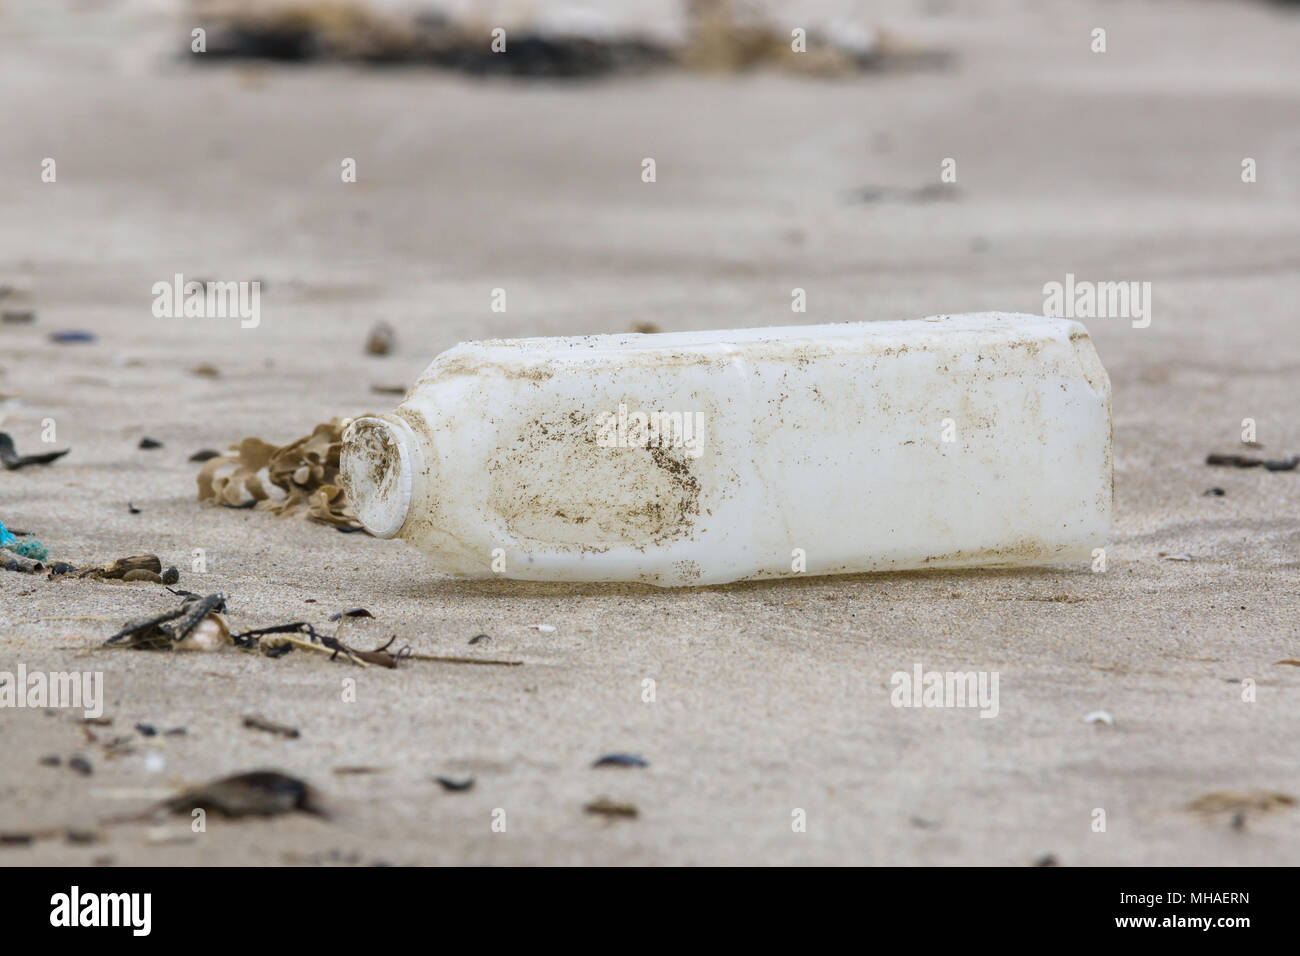 Plastic milk bottle washed up on a sandy beach an example of the many pieces of garbage in the sea around the UK - Stock Image